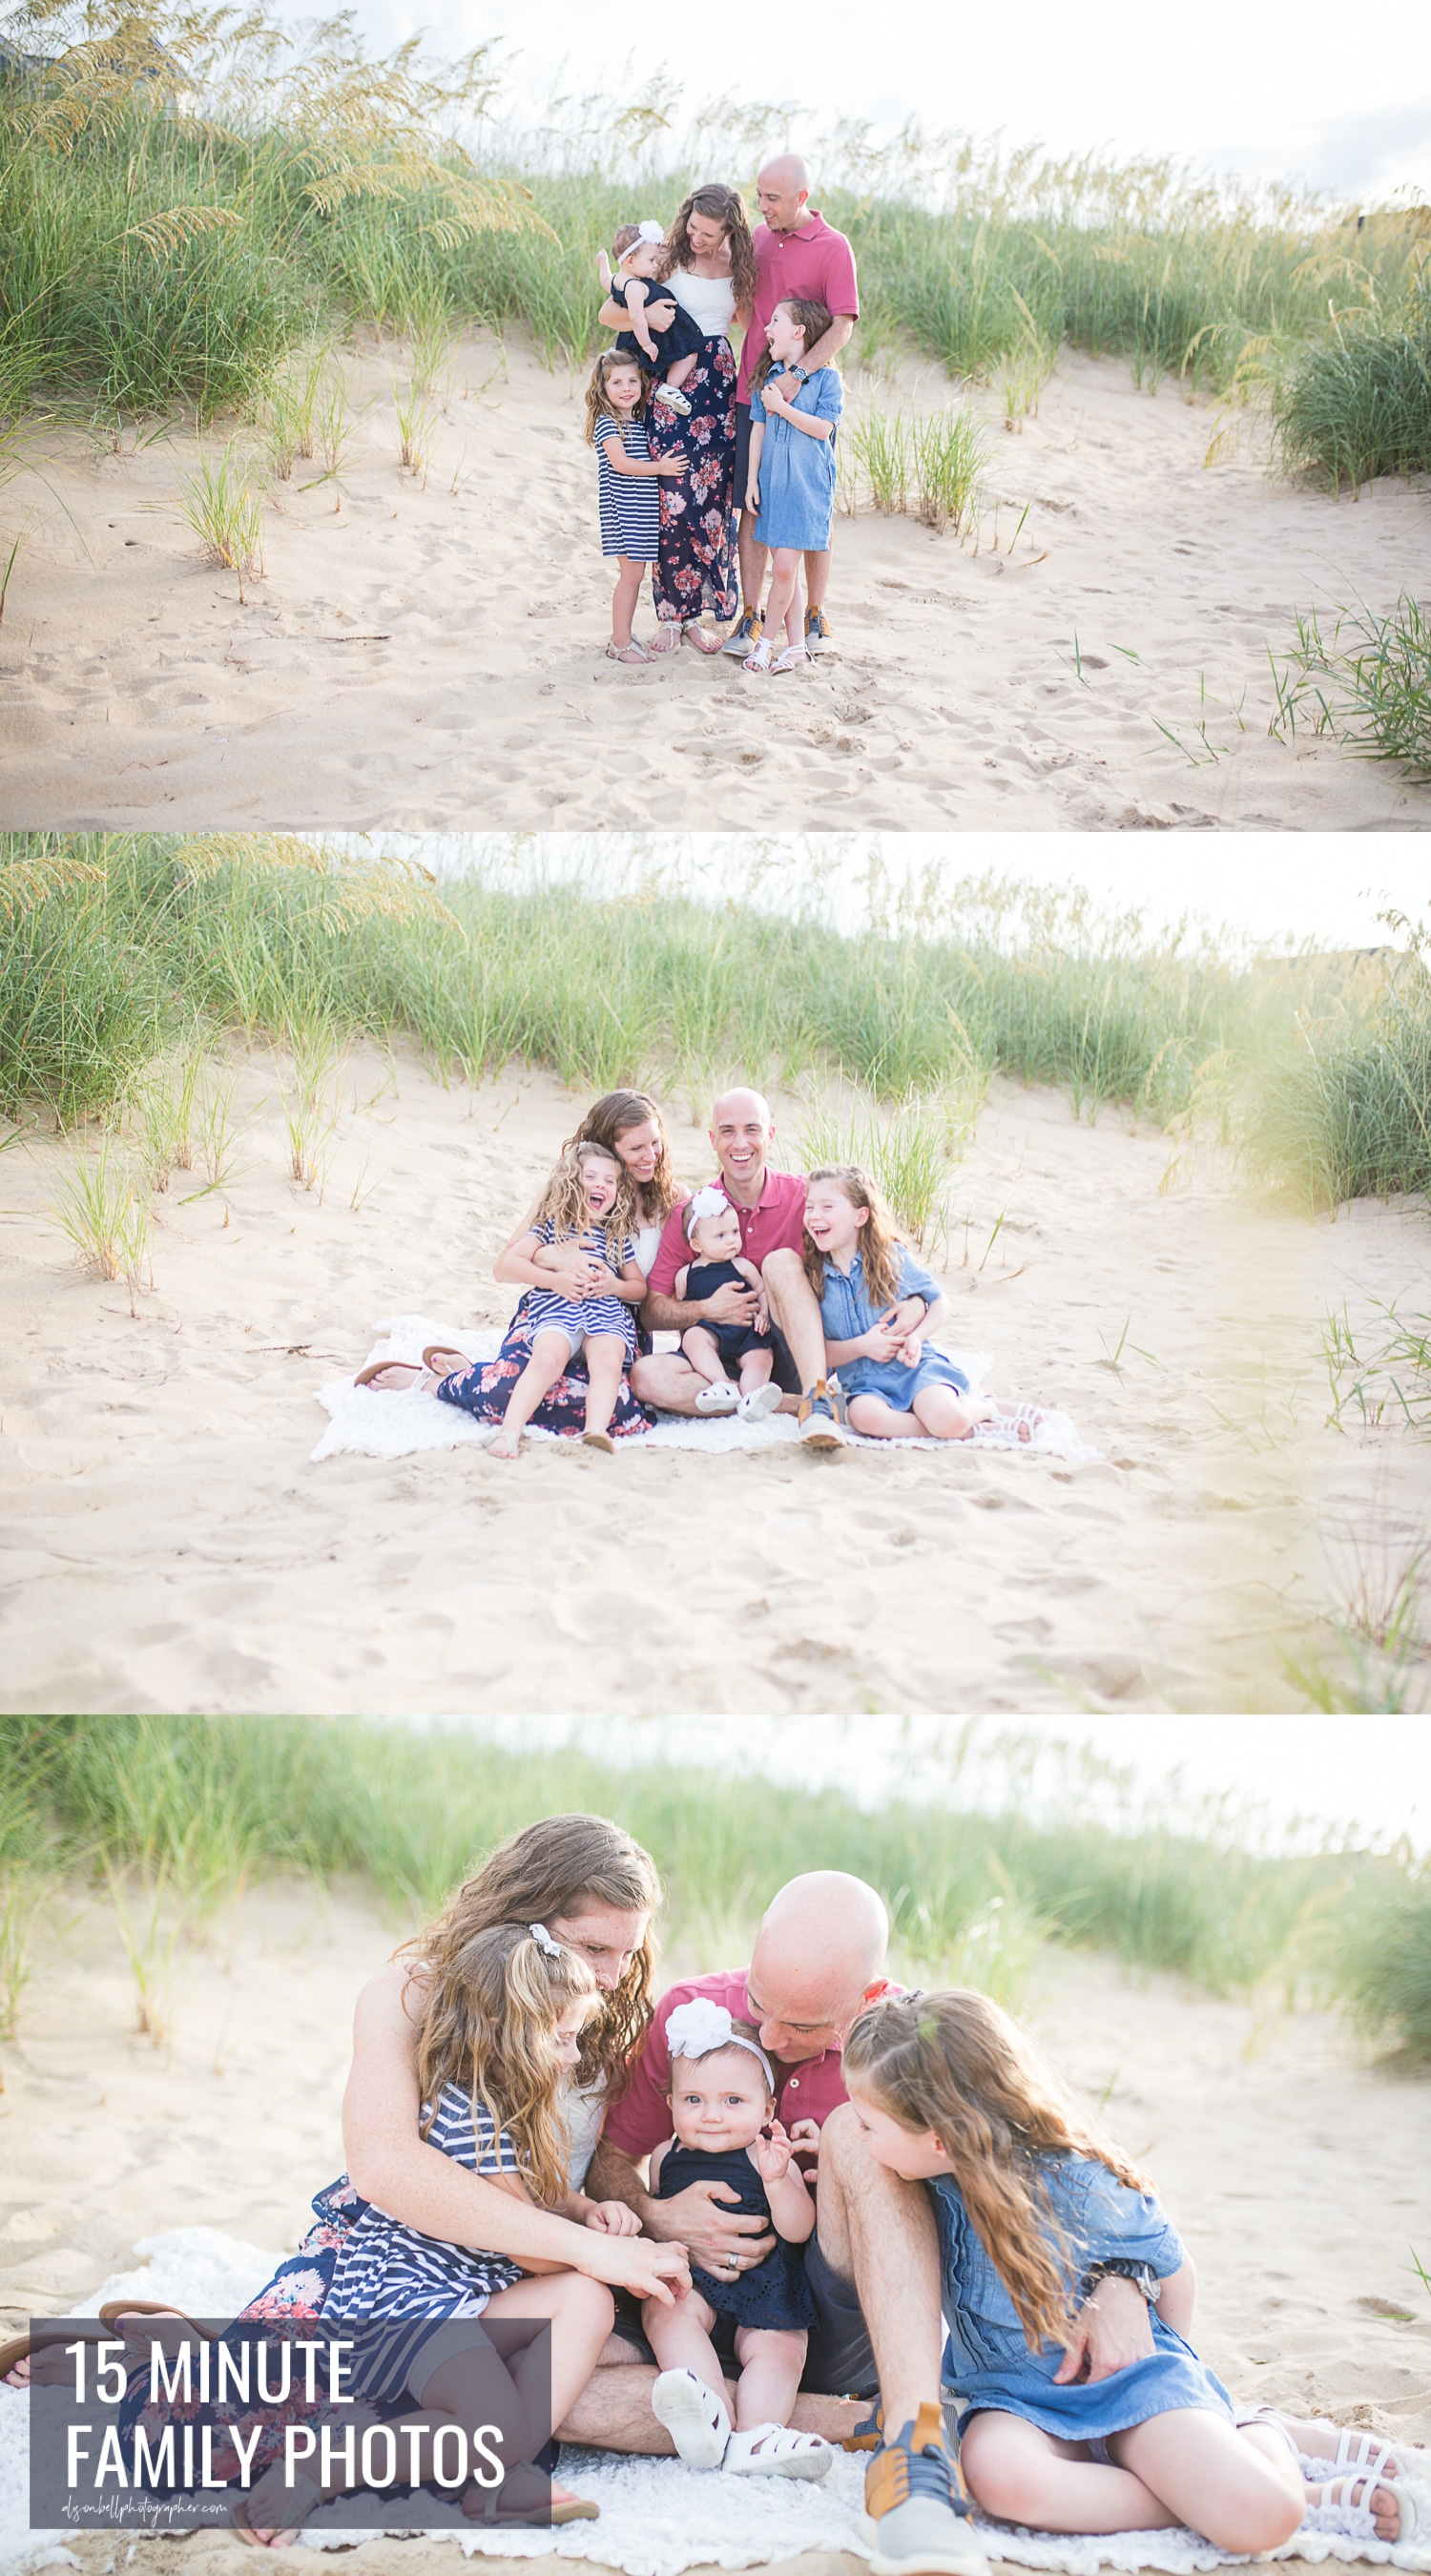 15 minute family mini photo session at East Beach, Norfolk by Alison Bell Photographer